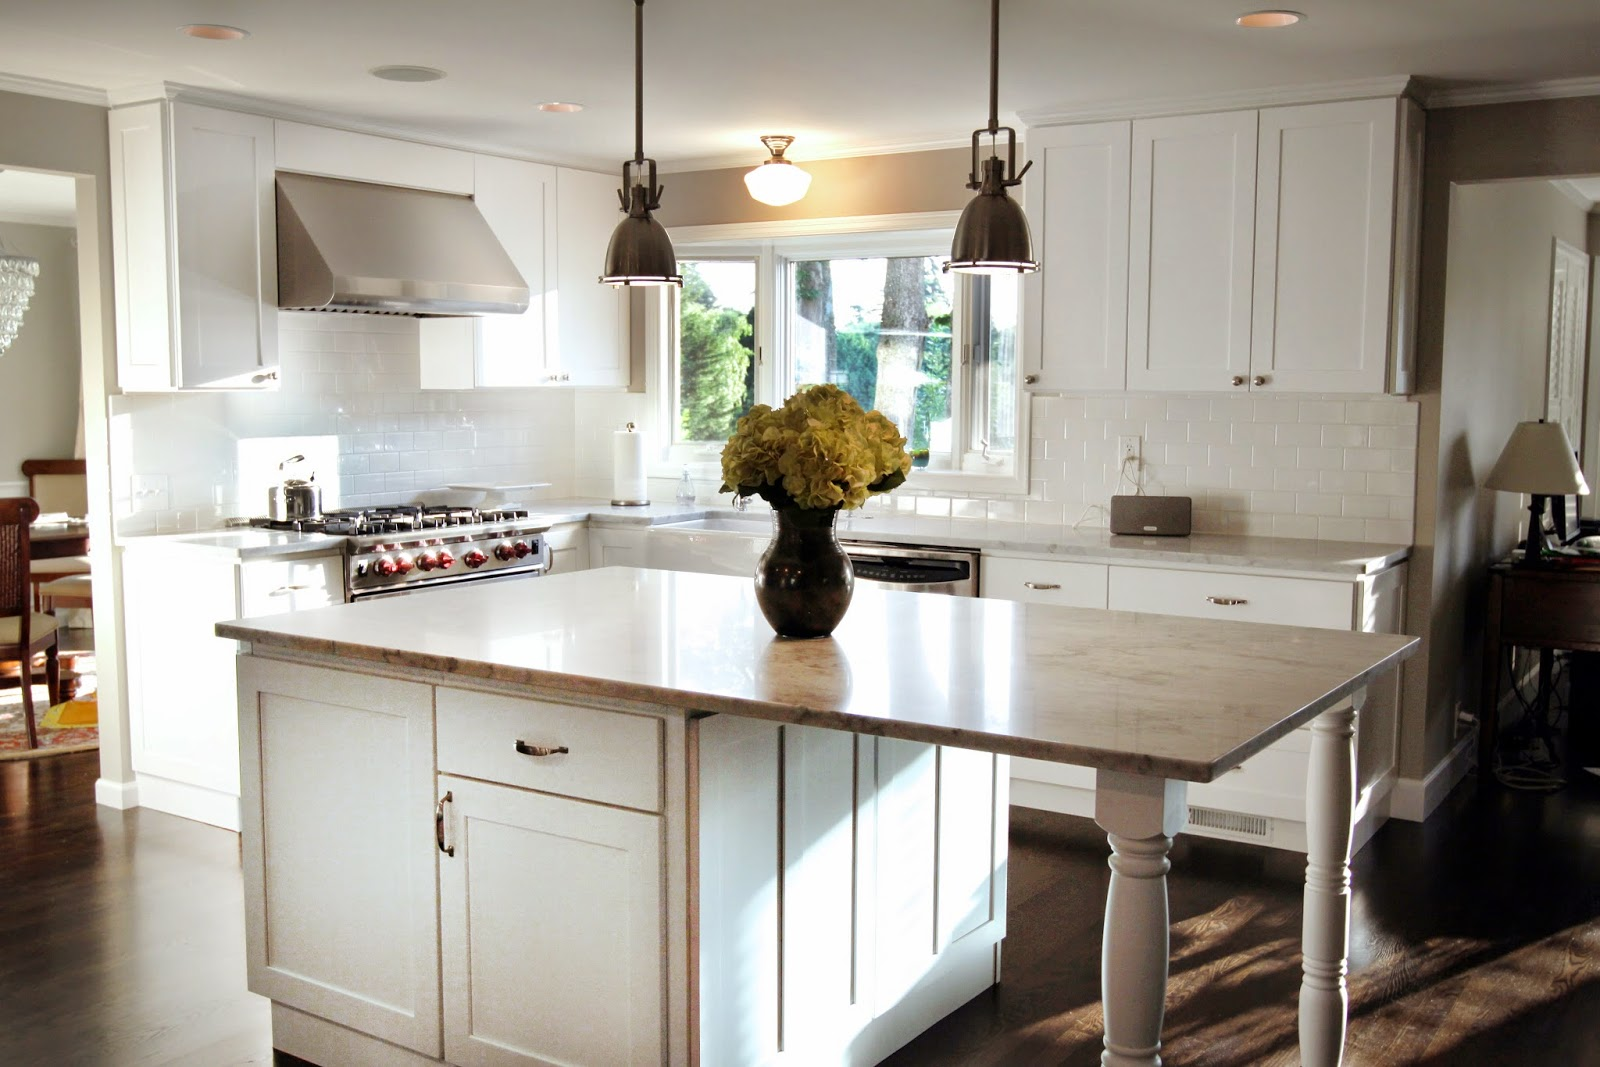 Lovely Kitchen Interiors With White Cabinets